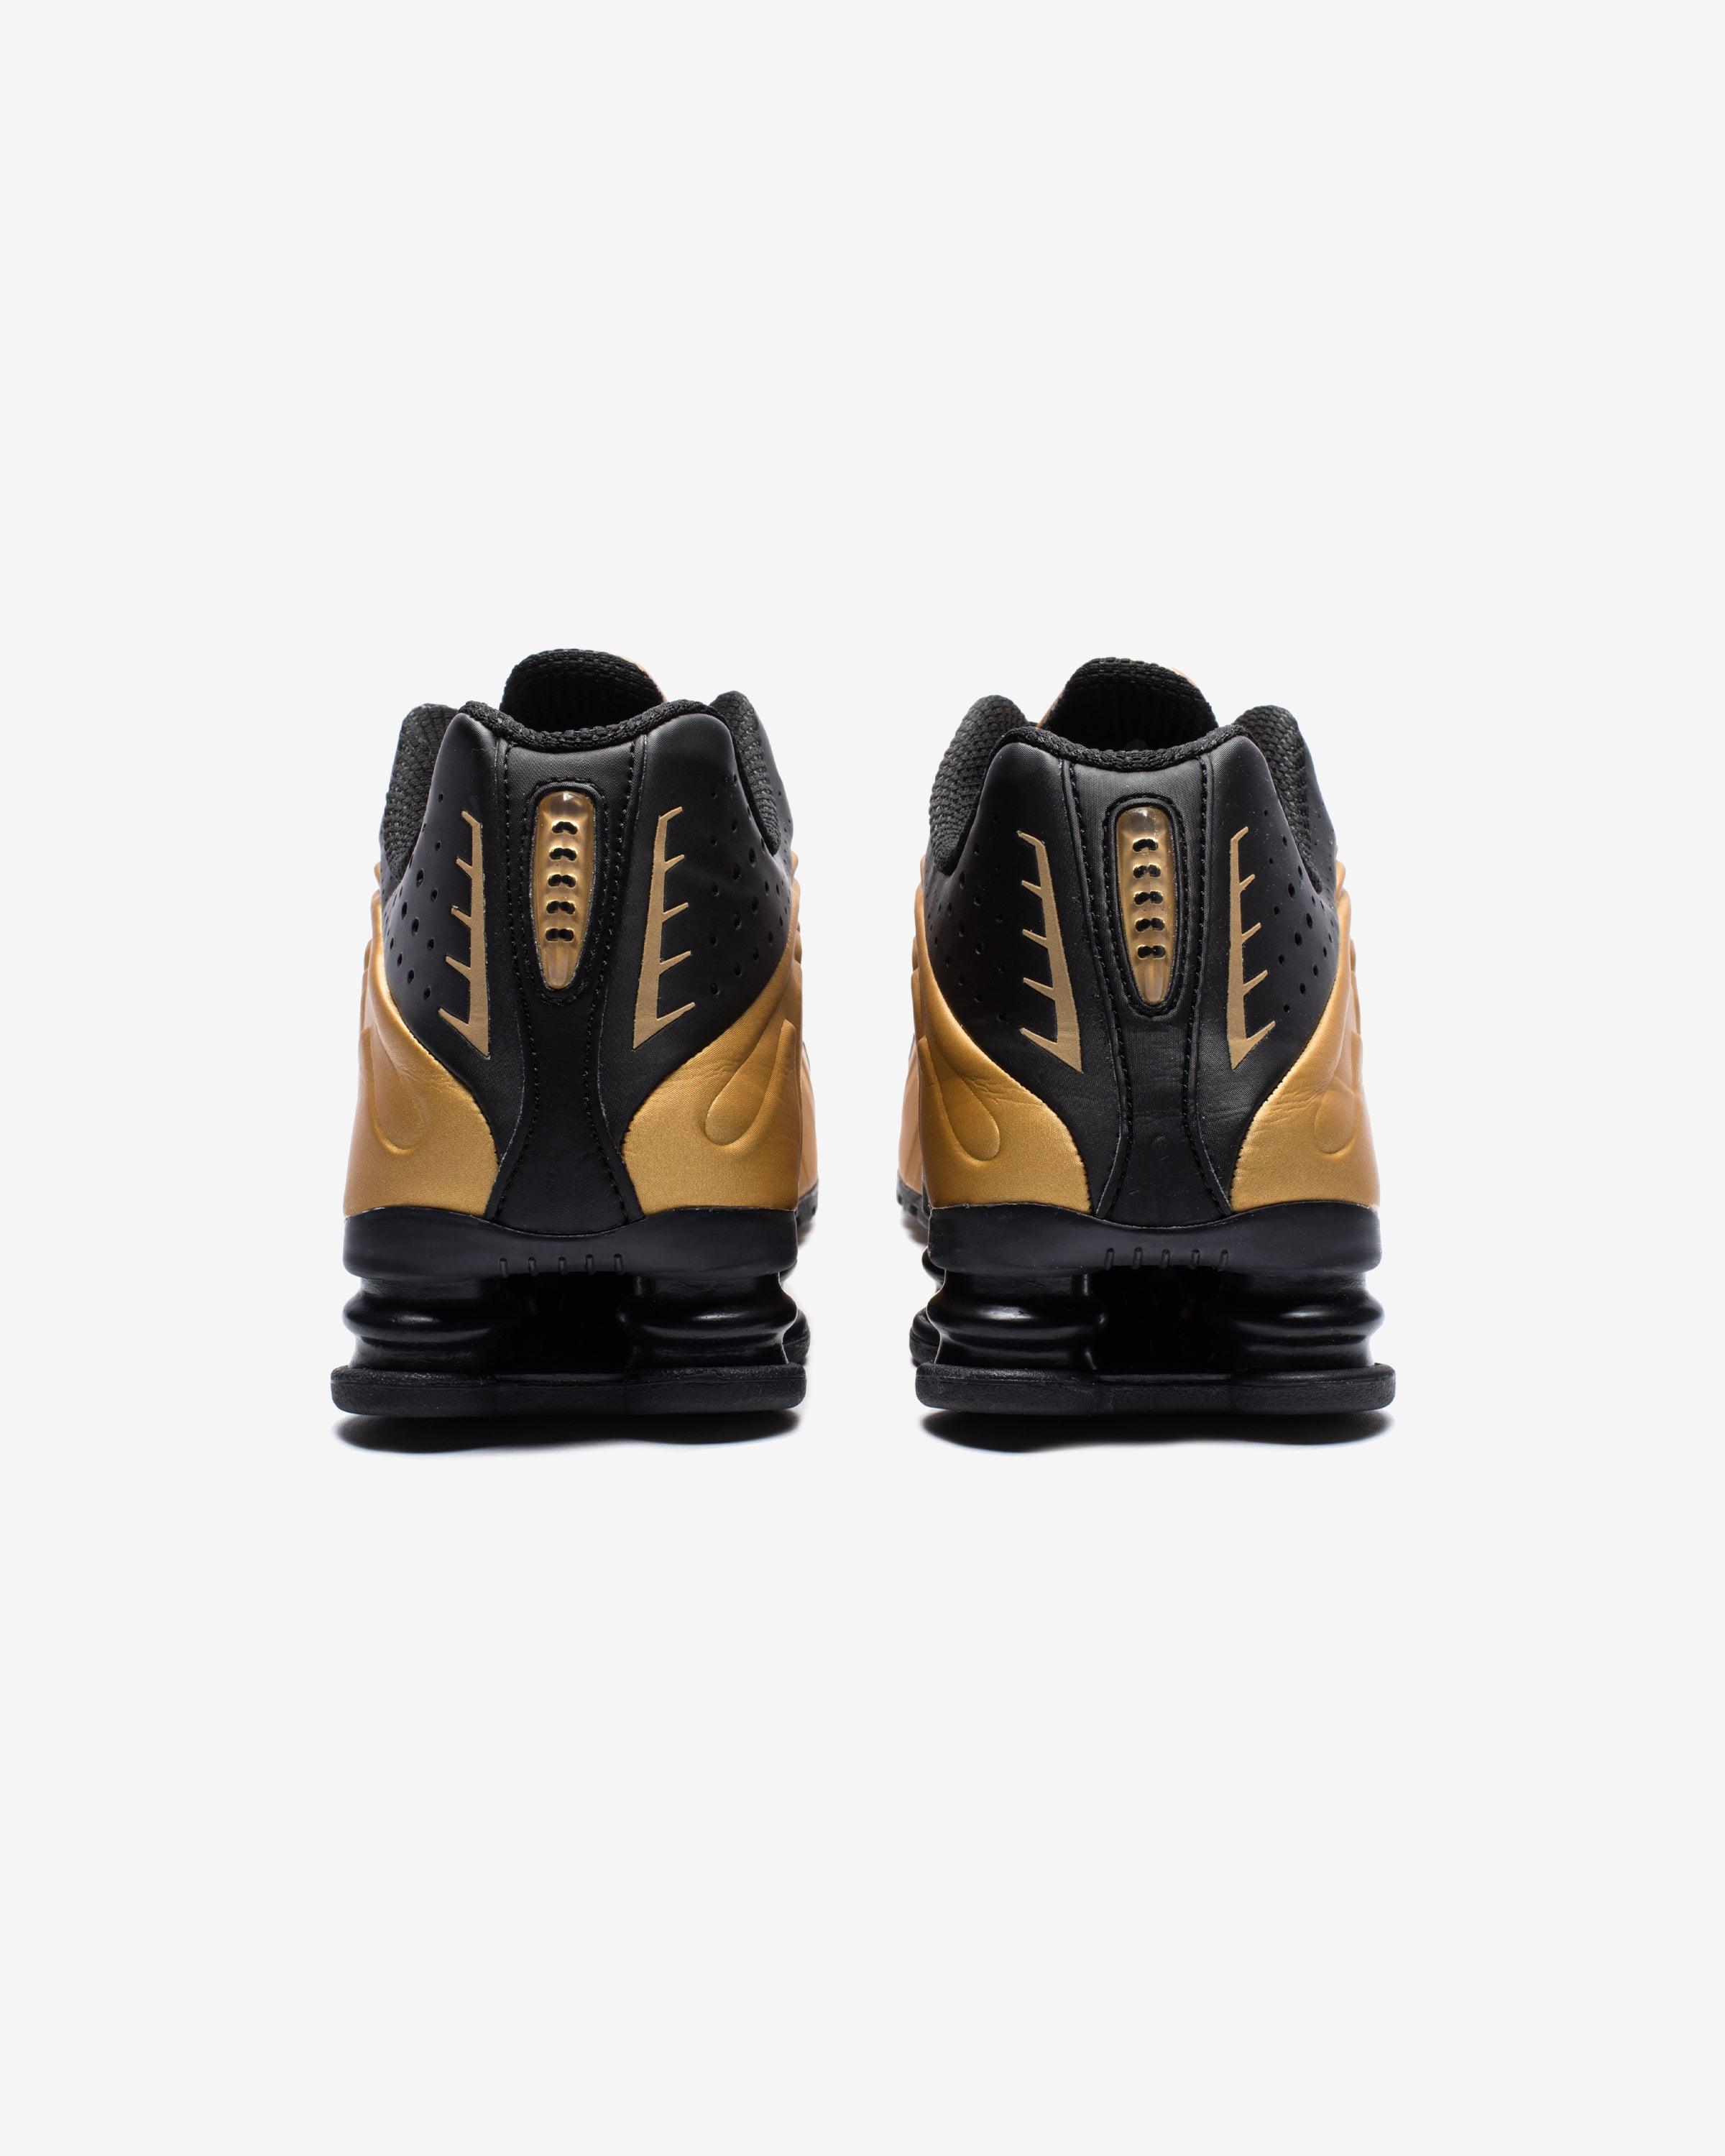 SHOX R4 - METALLICGOLD/ BLACK